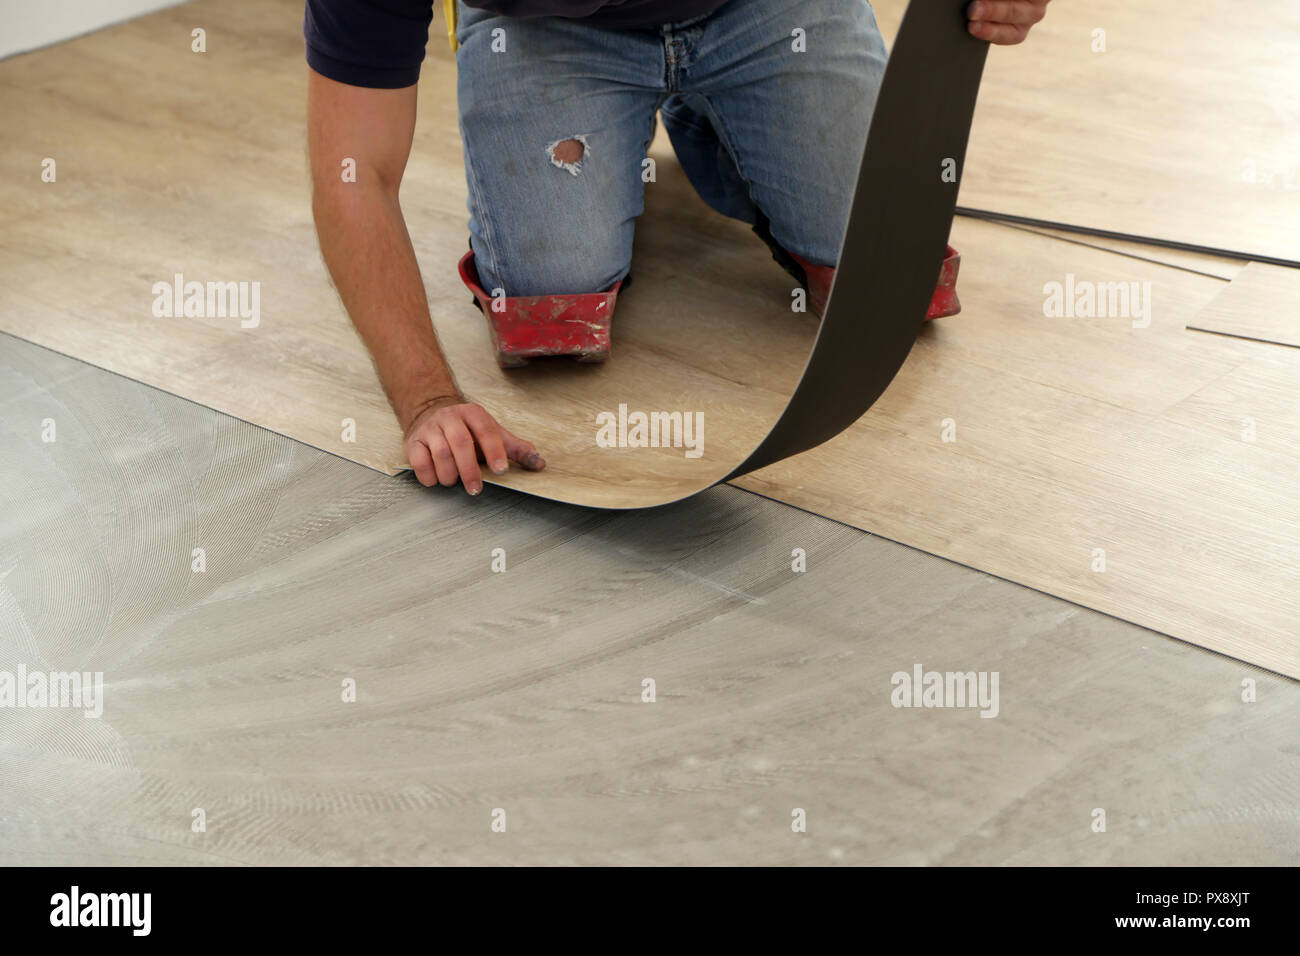 Installing Vinyl Tile Worker Installing New Vinyl Tile Floor Stock Photo 222702000 Alamy